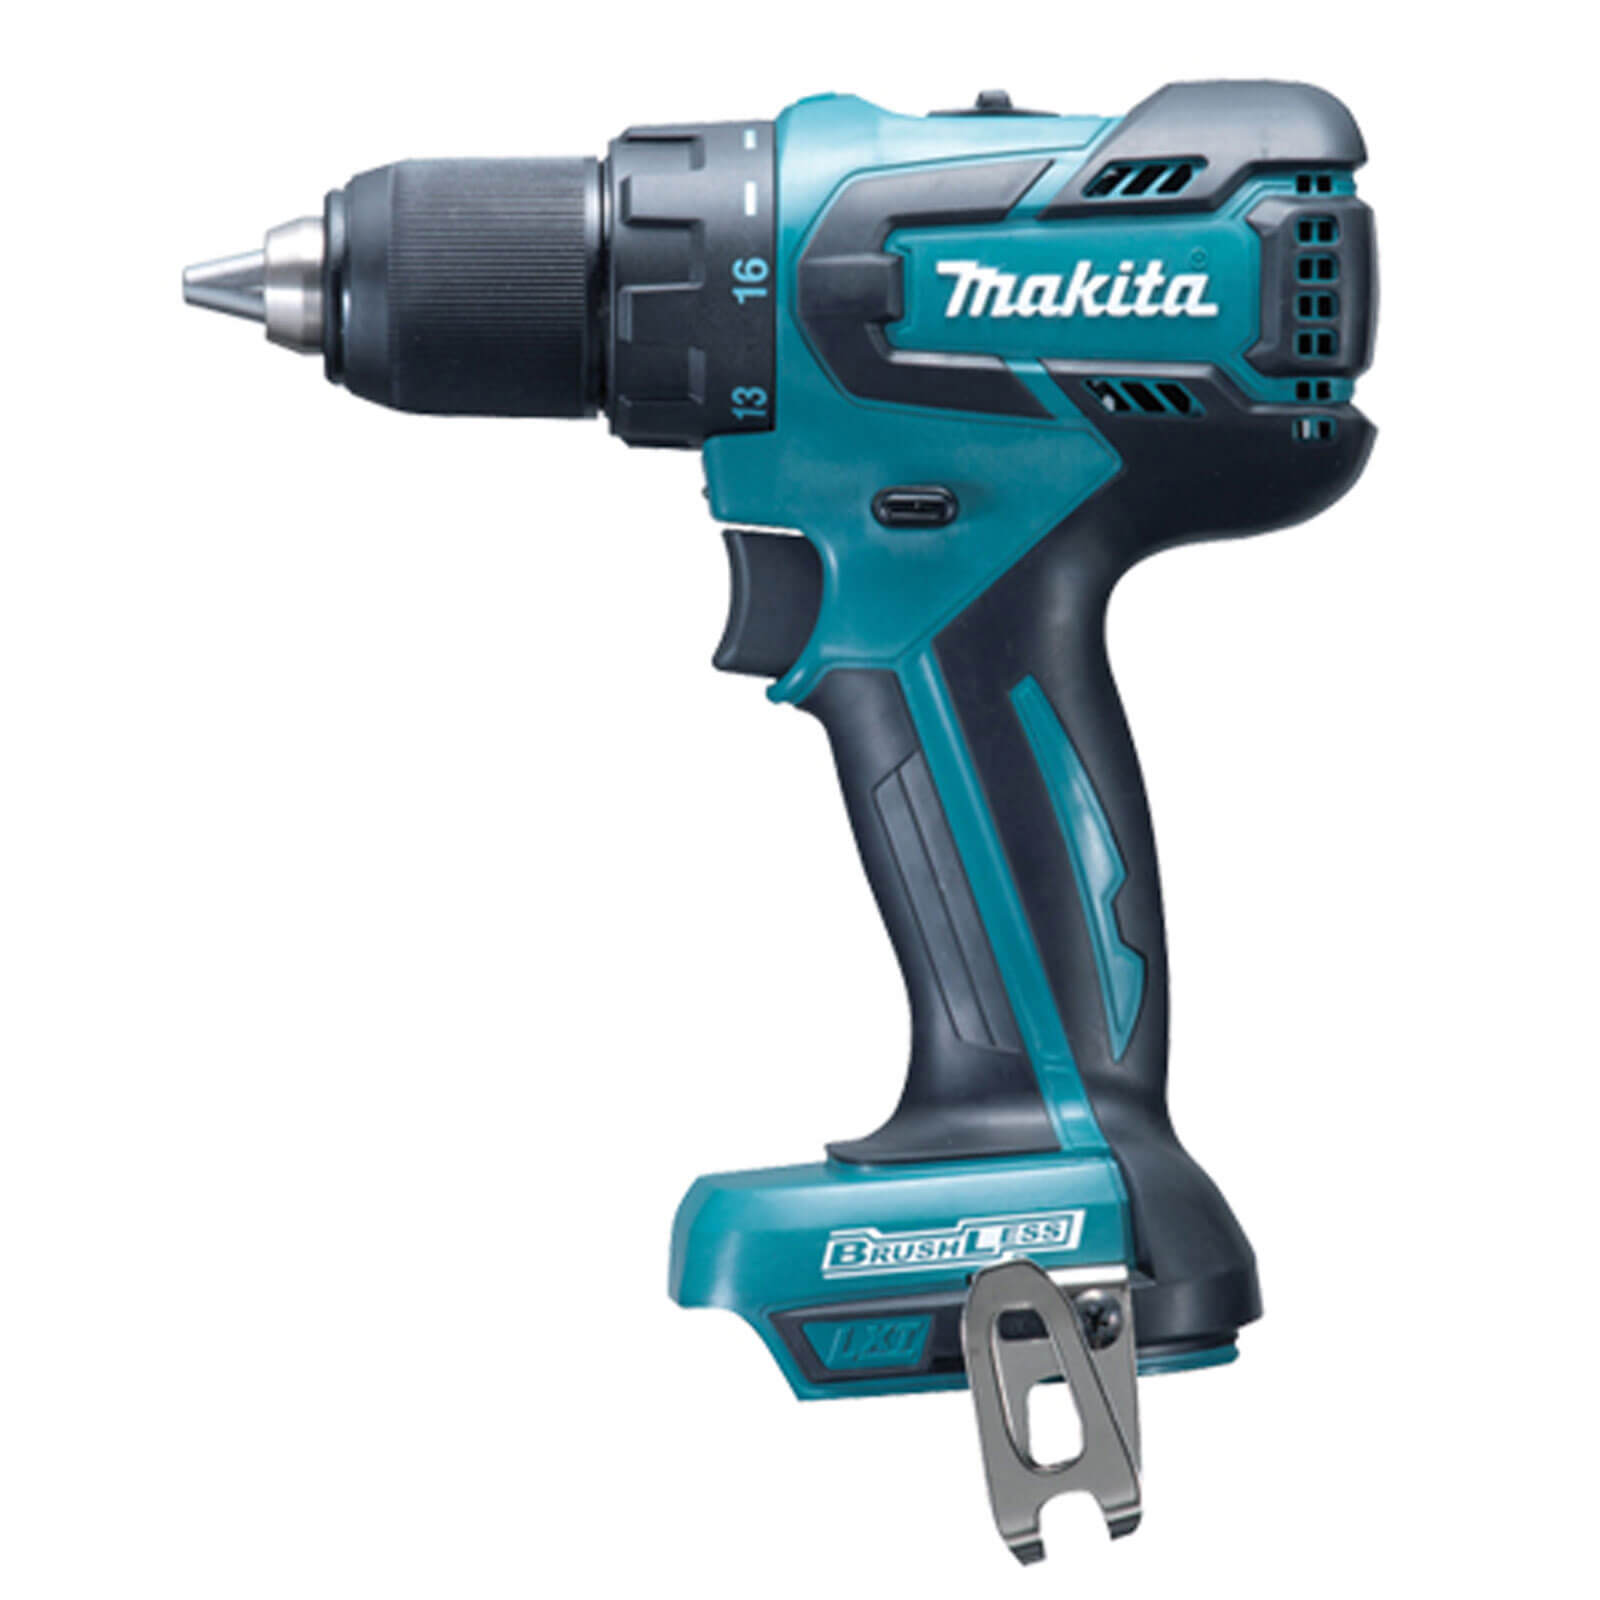 makita ddf459 18v cordless lxt brushless drill driver no. Black Bedroom Furniture Sets. Home Design Ideas